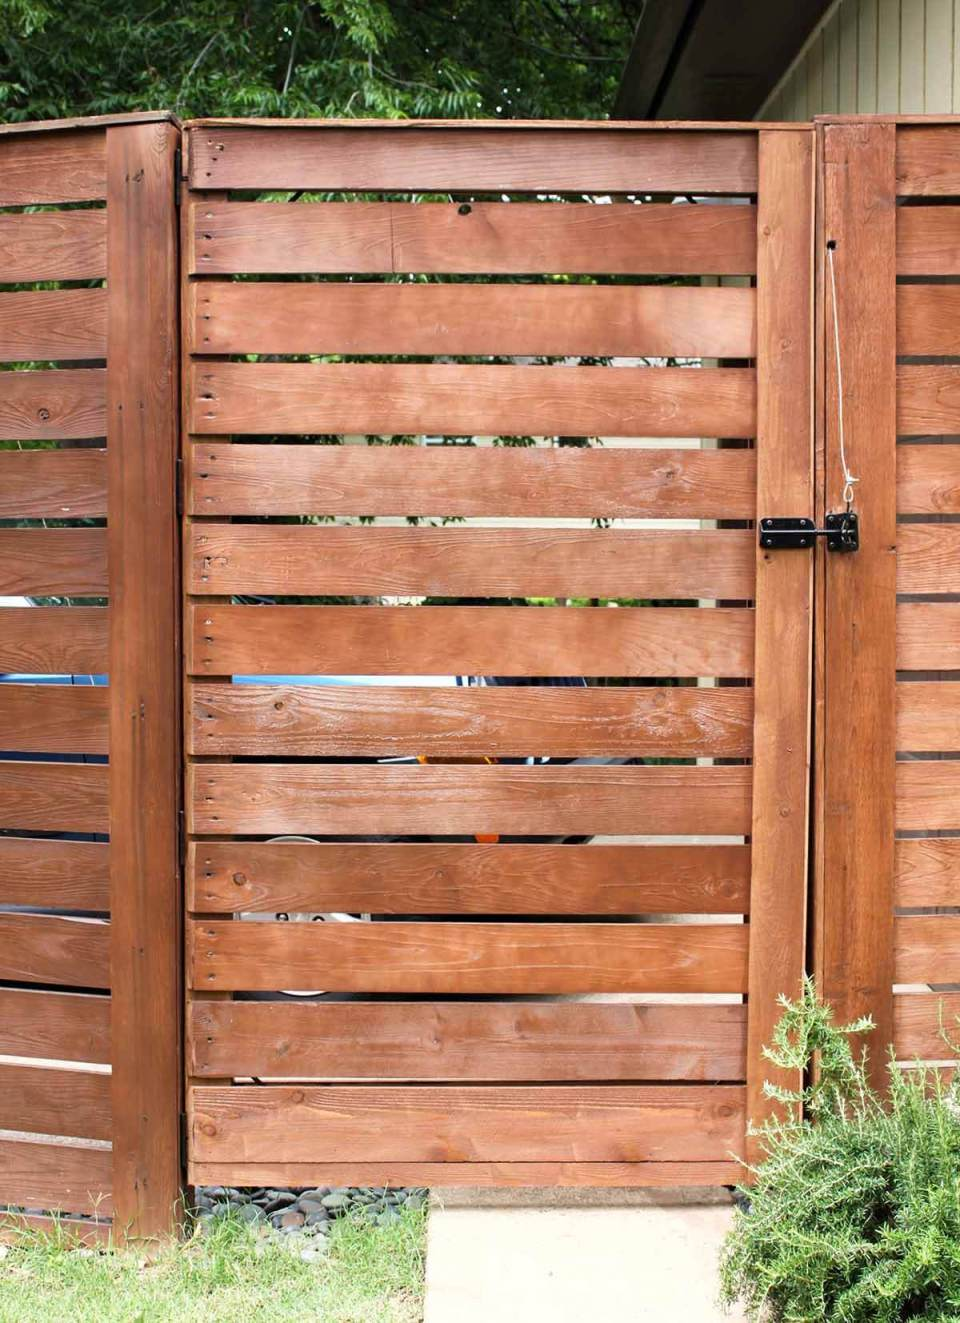 DIY Fence Ideas: Tall Cedar Wood Plank Fence